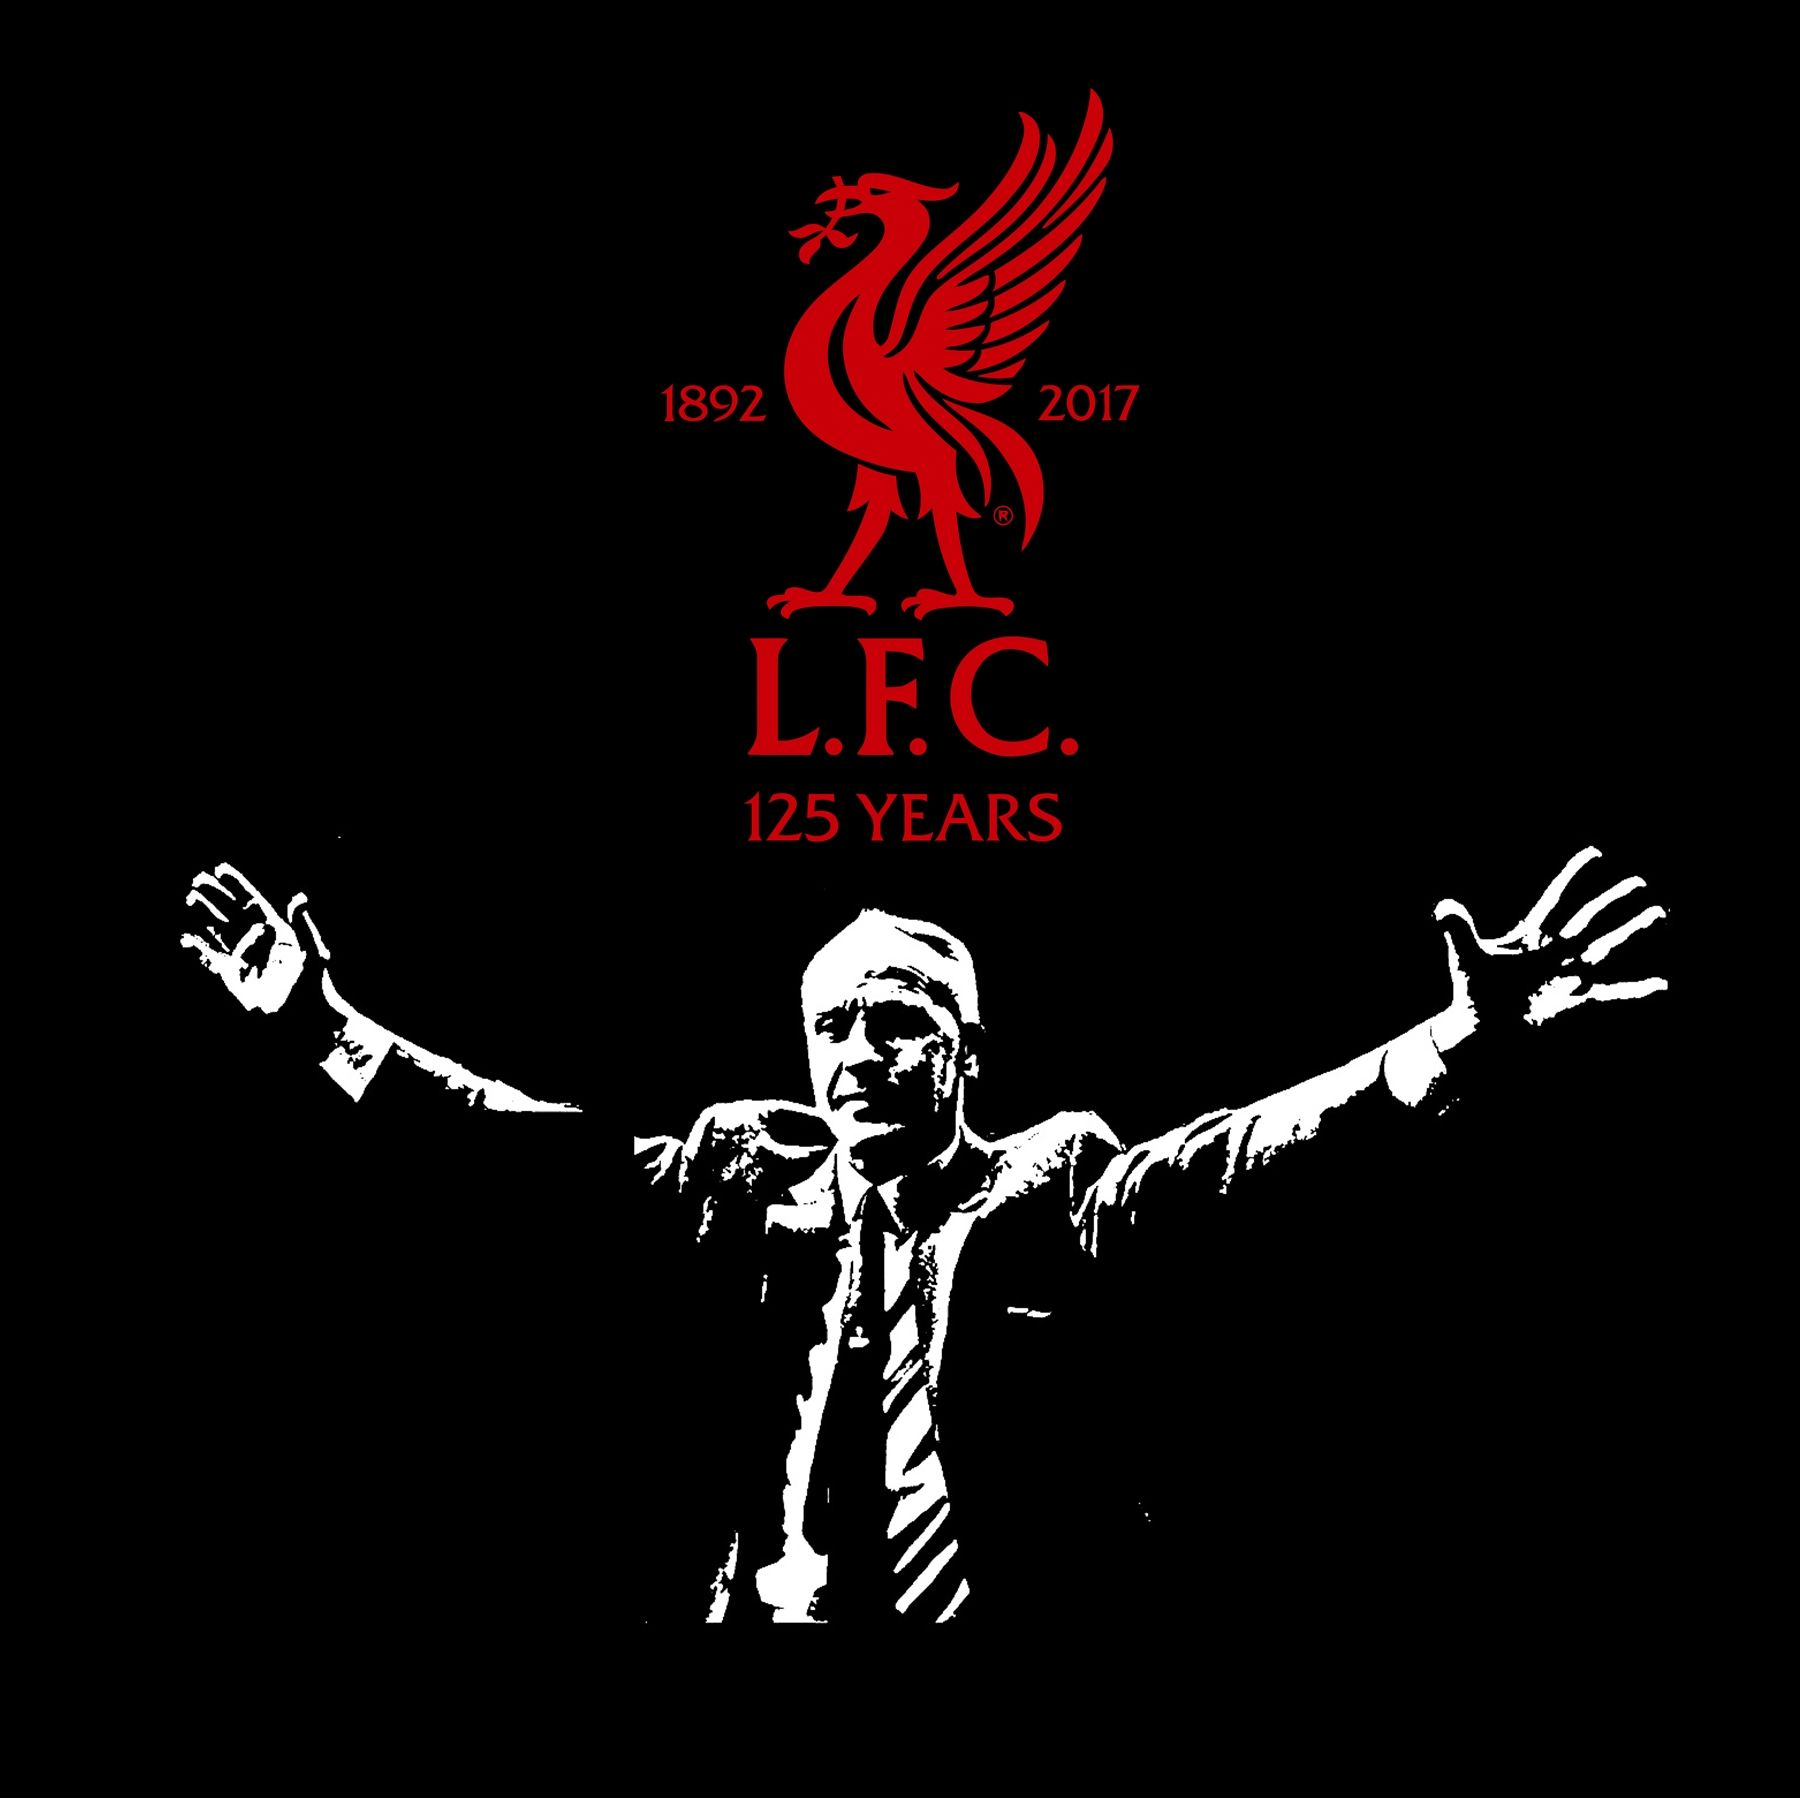 Pin on Bill Shankly